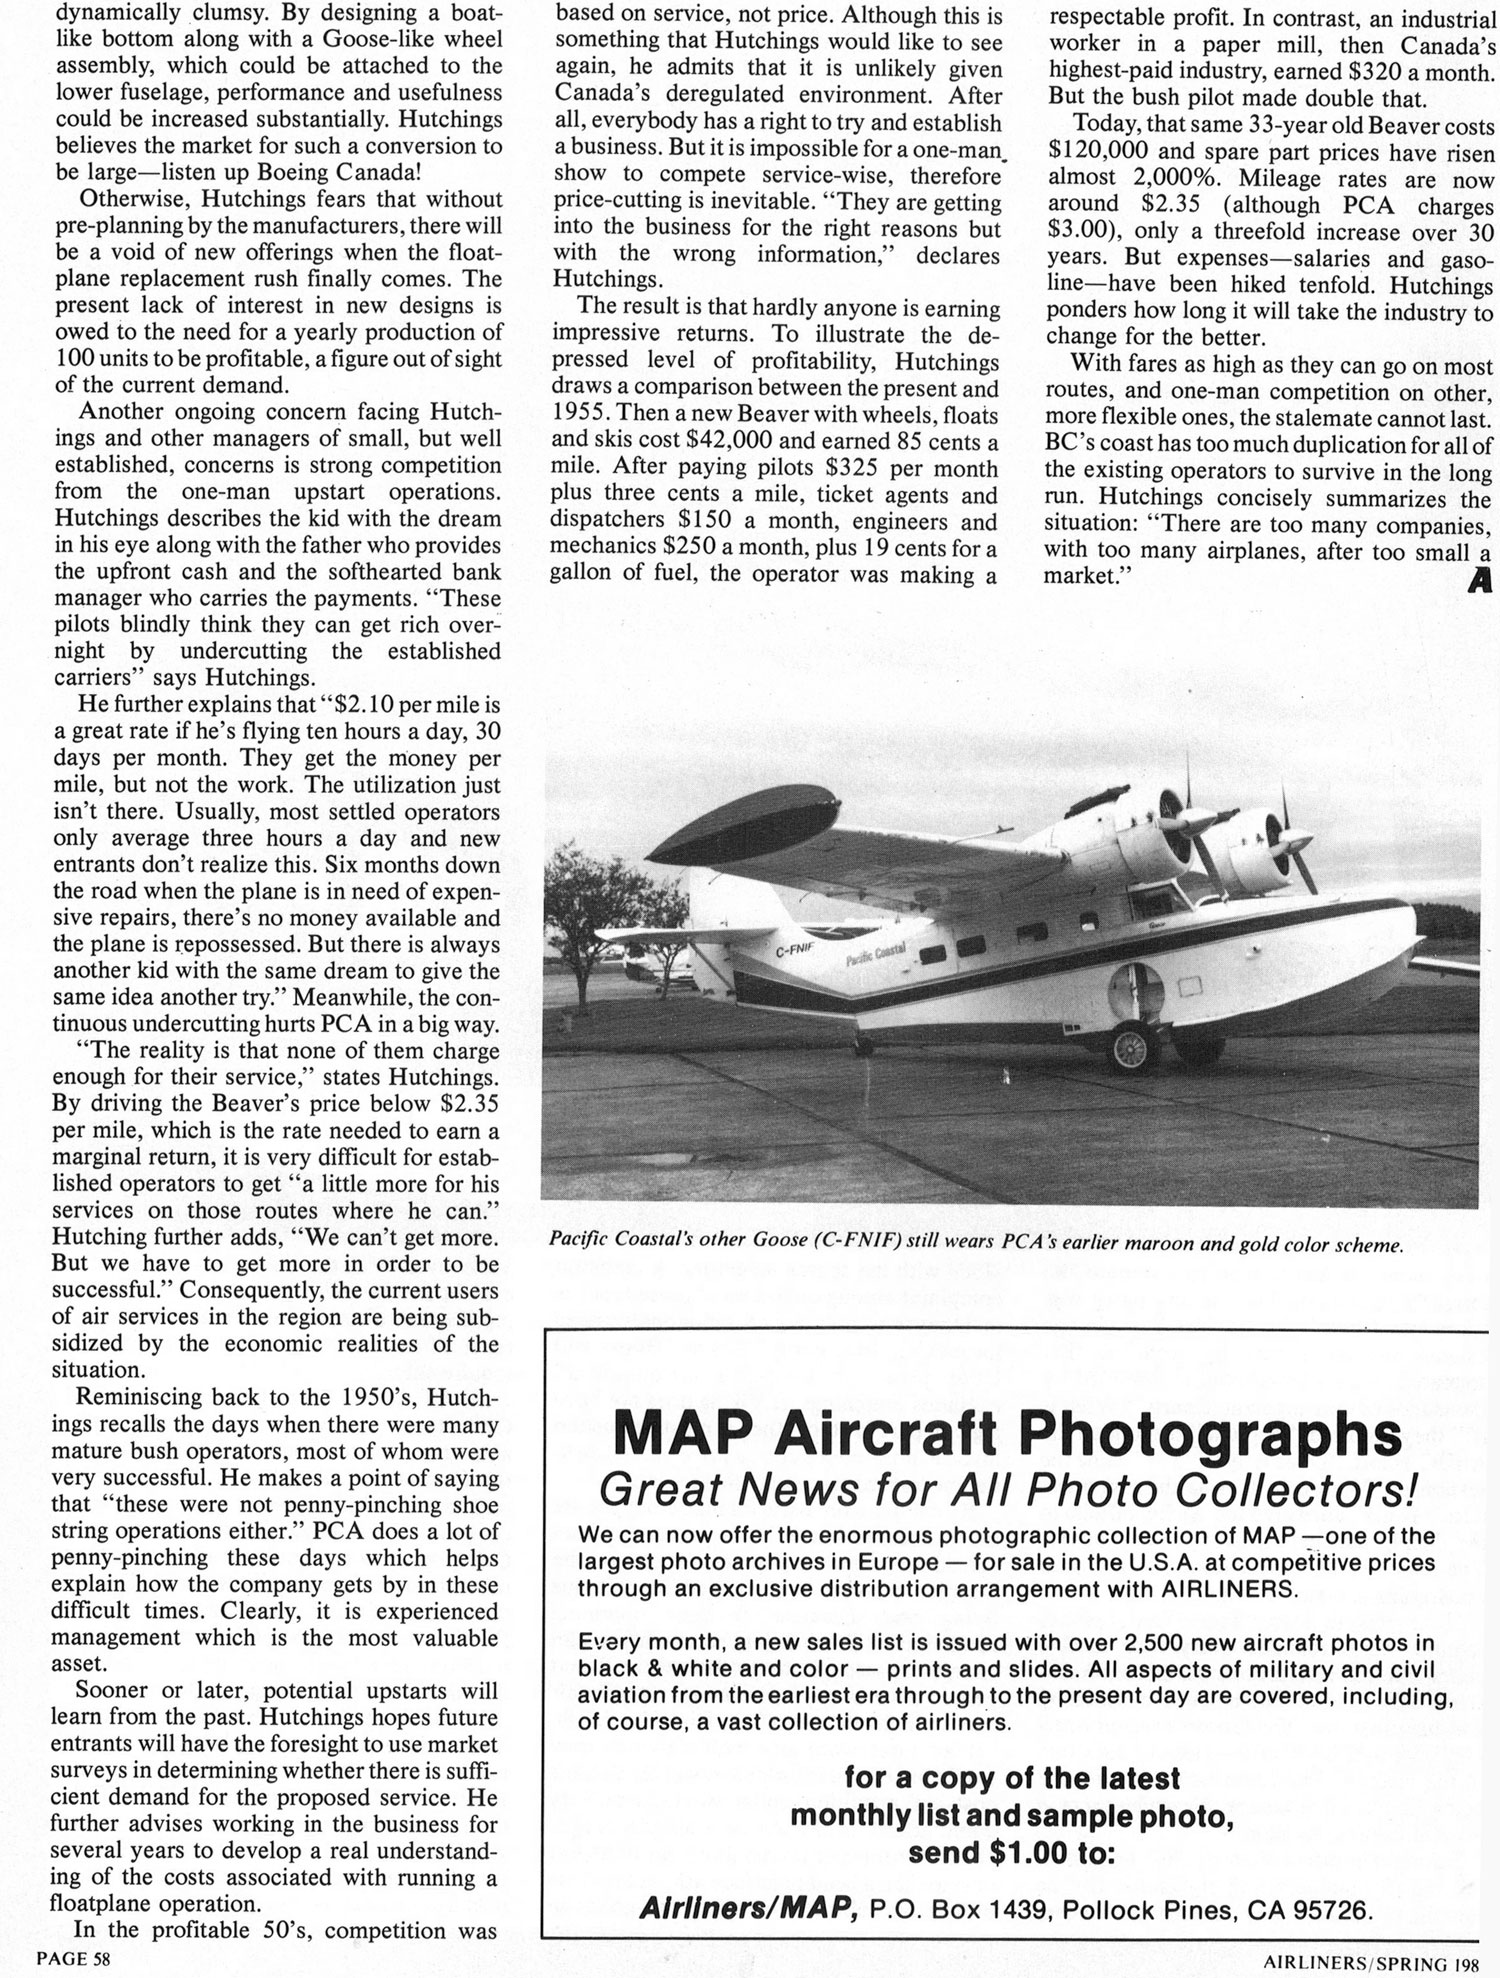 Pacific Coastal Airlines Tomorrow's Issues Today's Survival